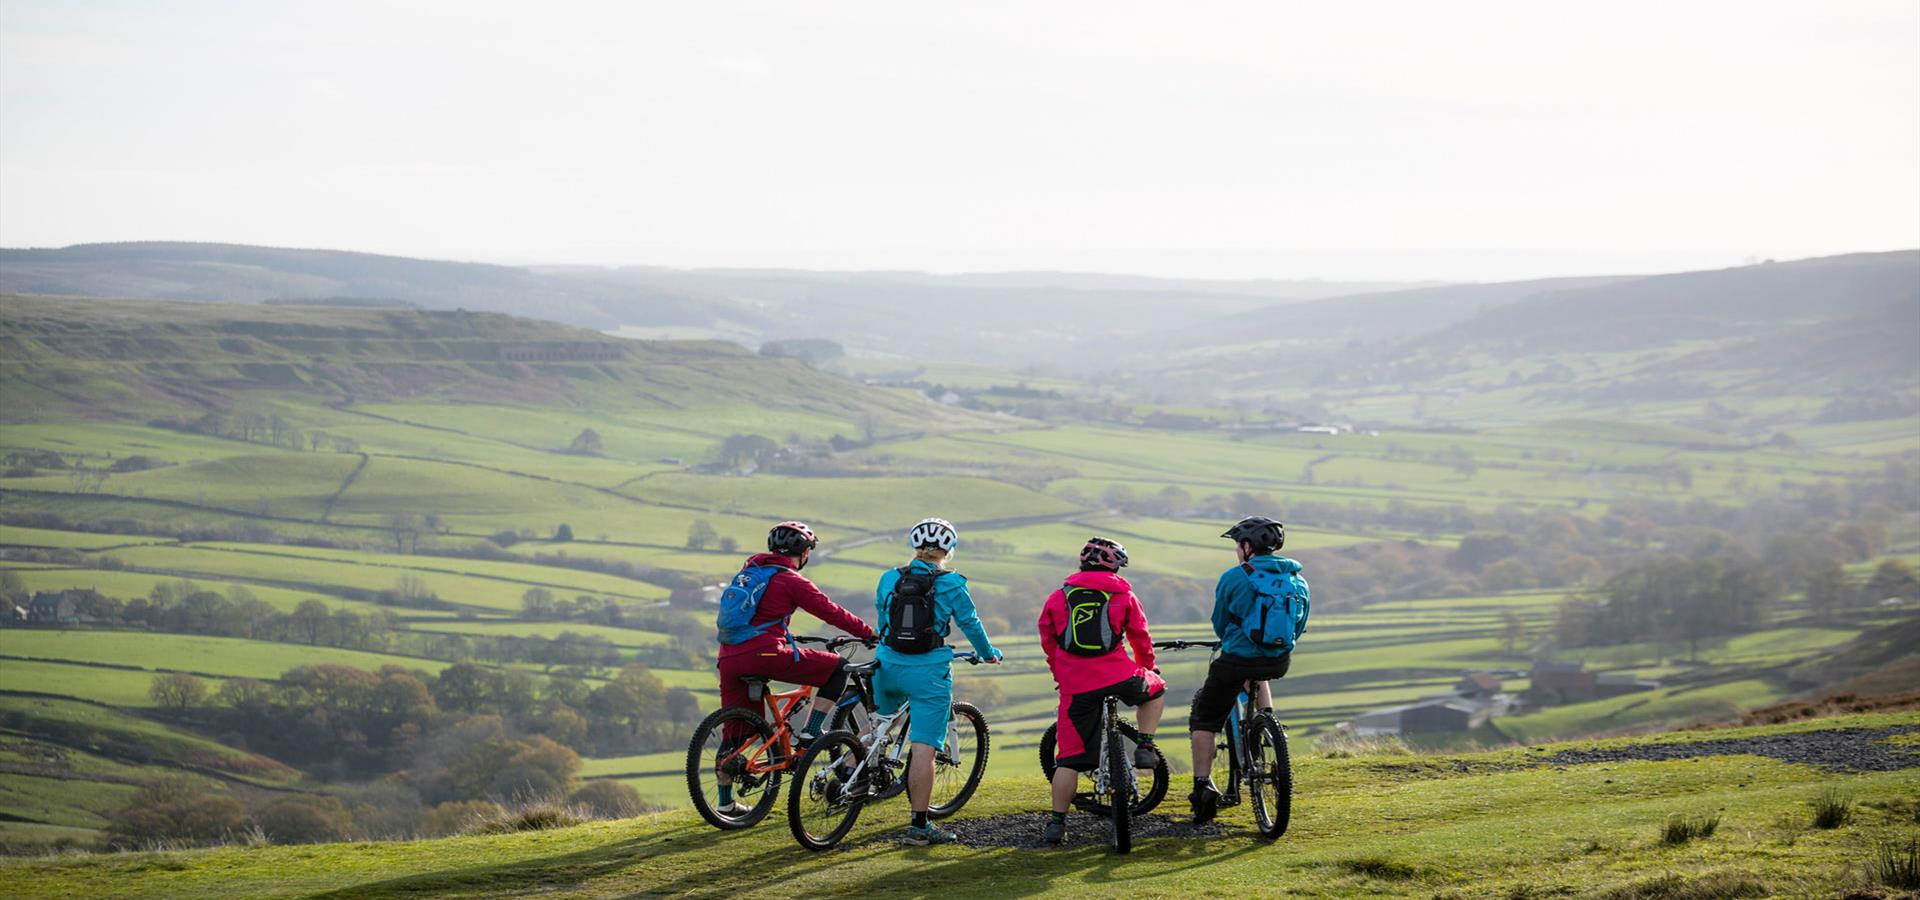 An image of Mountain Bikers in the North York Moors National Park - By Russell Burton